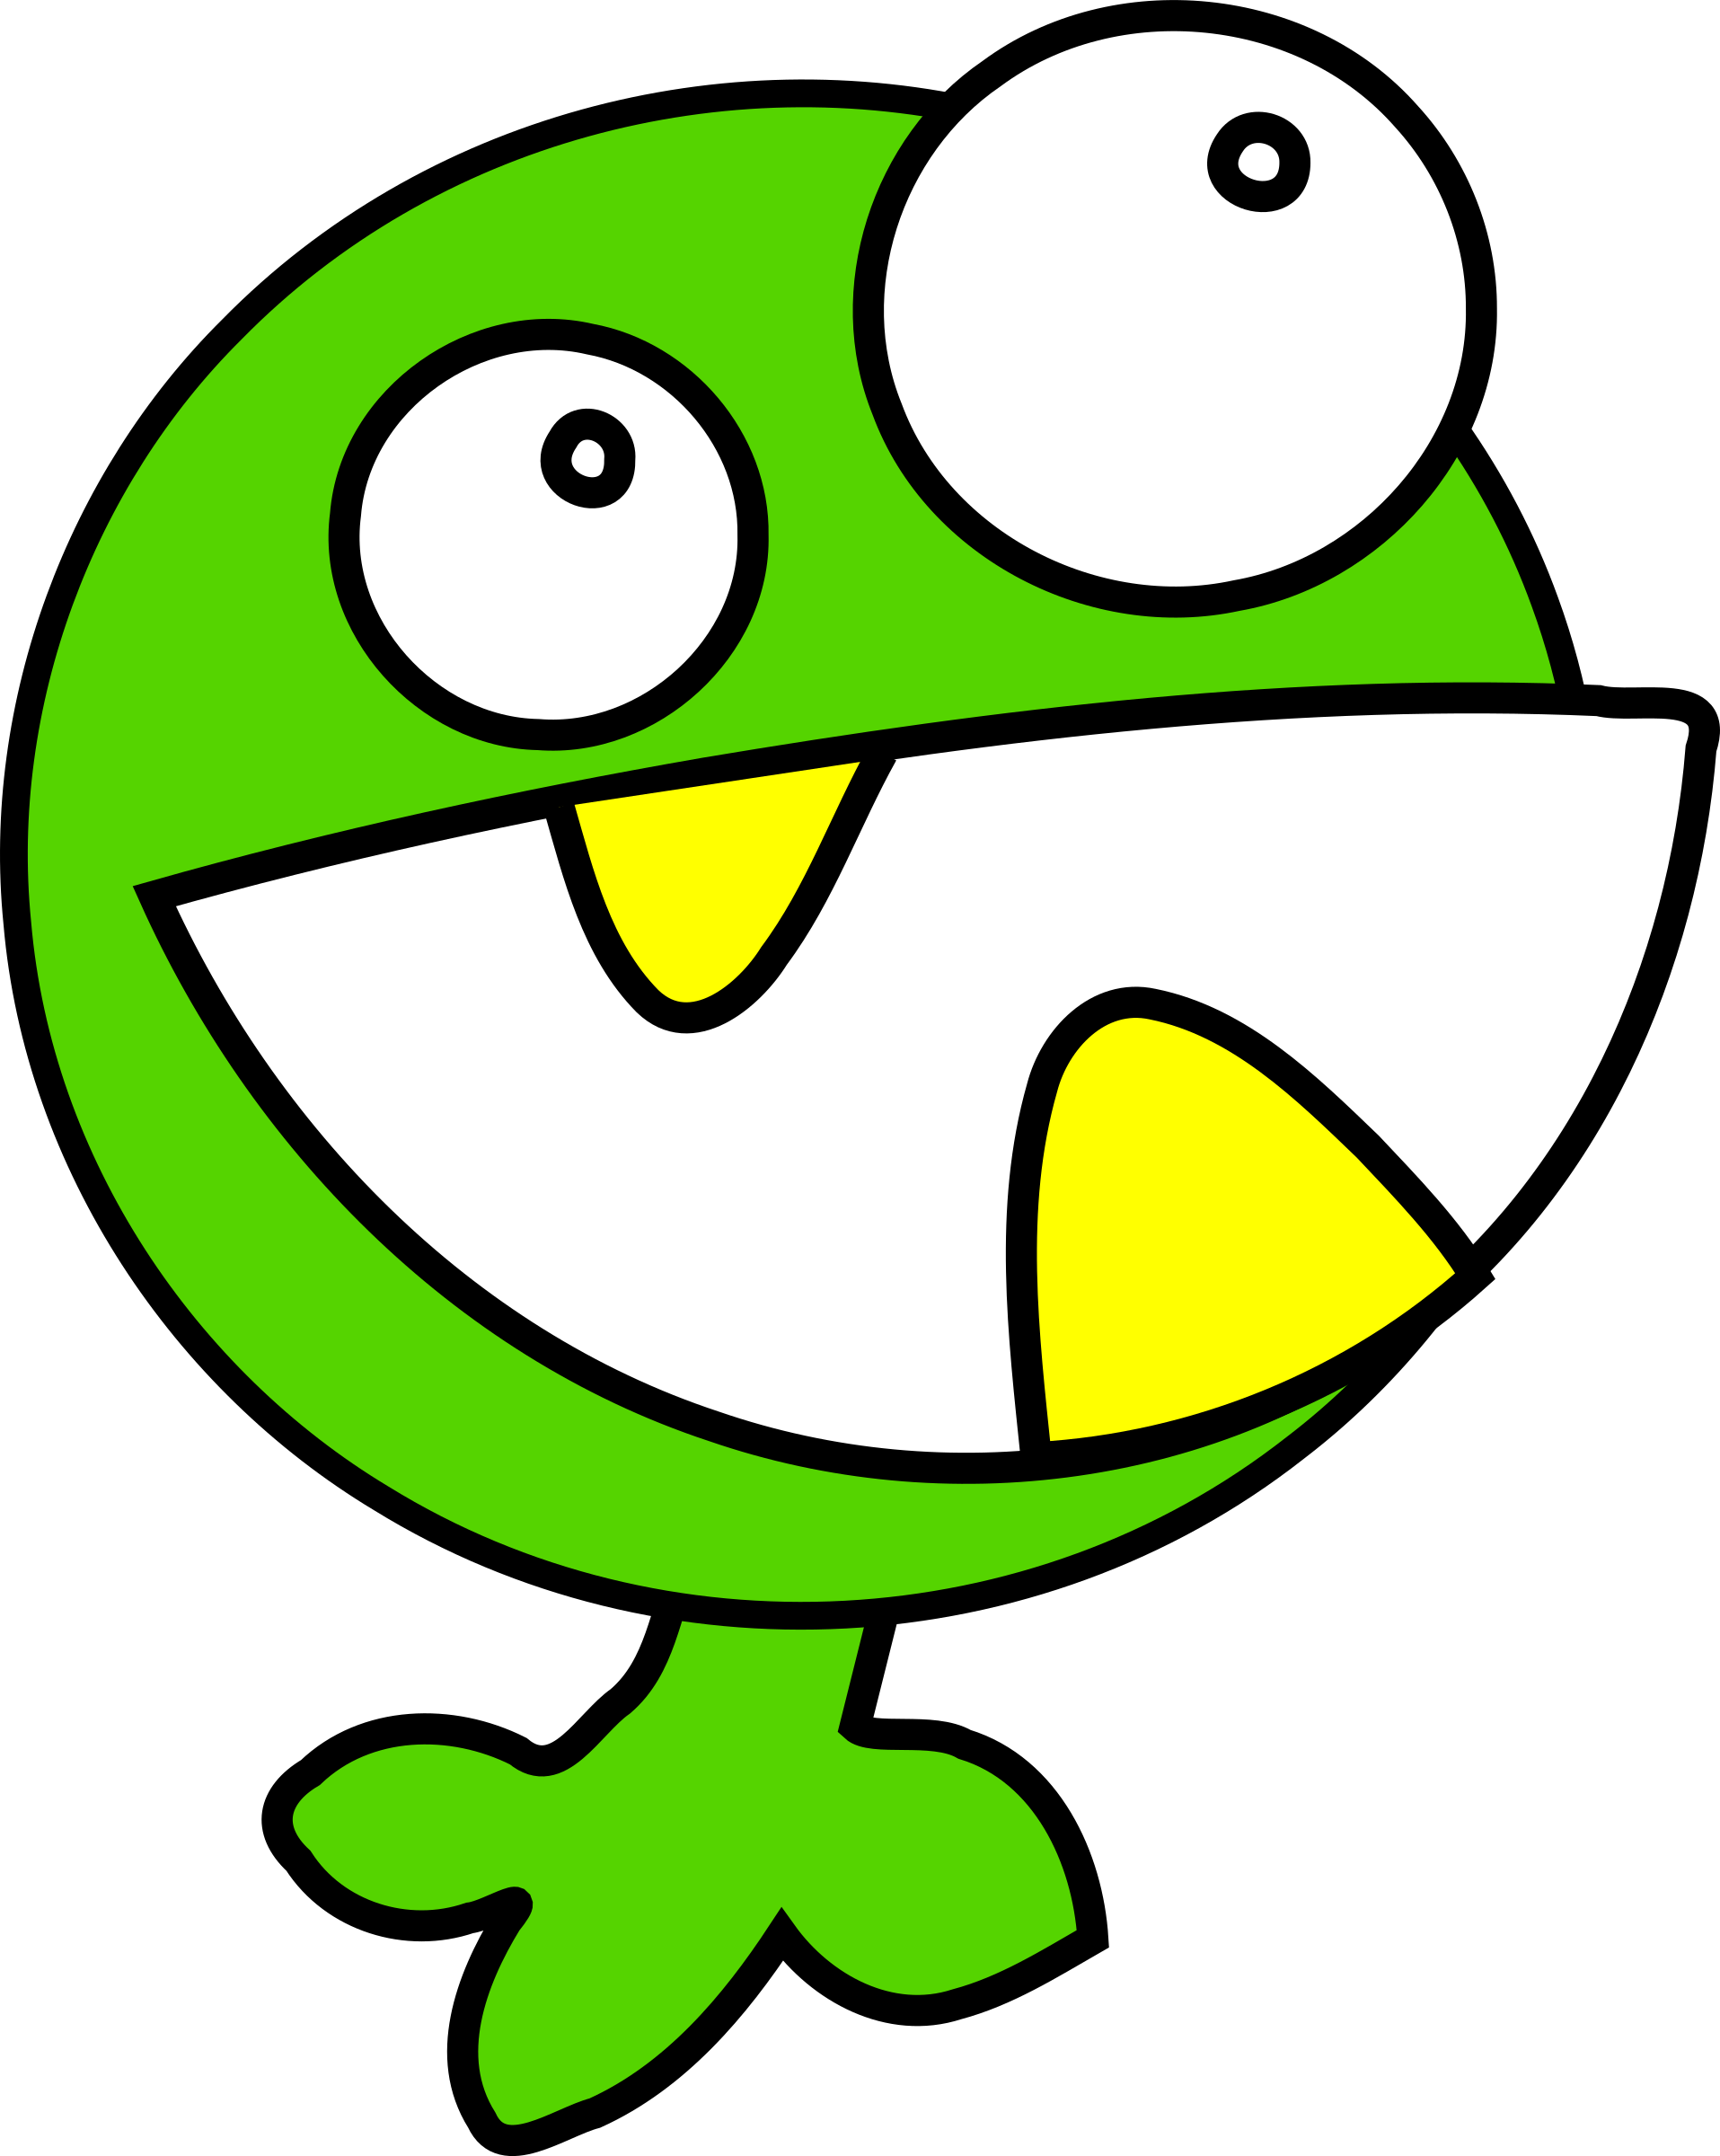 Green monster png. Icons free and downloads